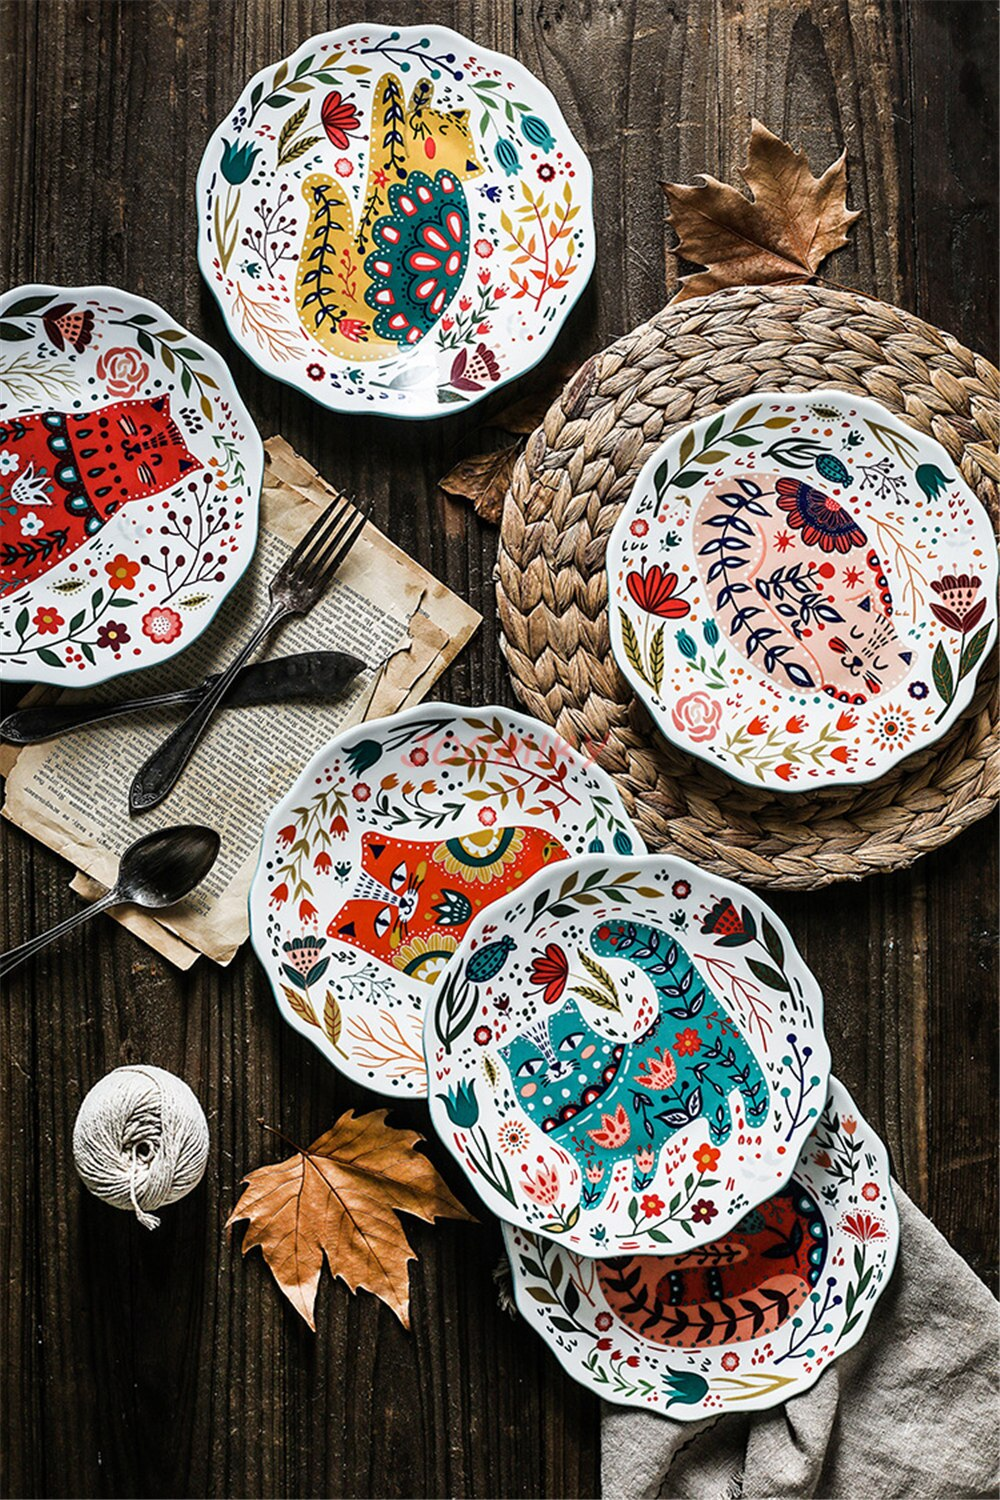 4Pcs/lot Ceramic Plate 8 inch Round Dishes Cartton Cat Plate Hand PaintedTableware Dinner Plates Dessert Plate Steak Tray Sets